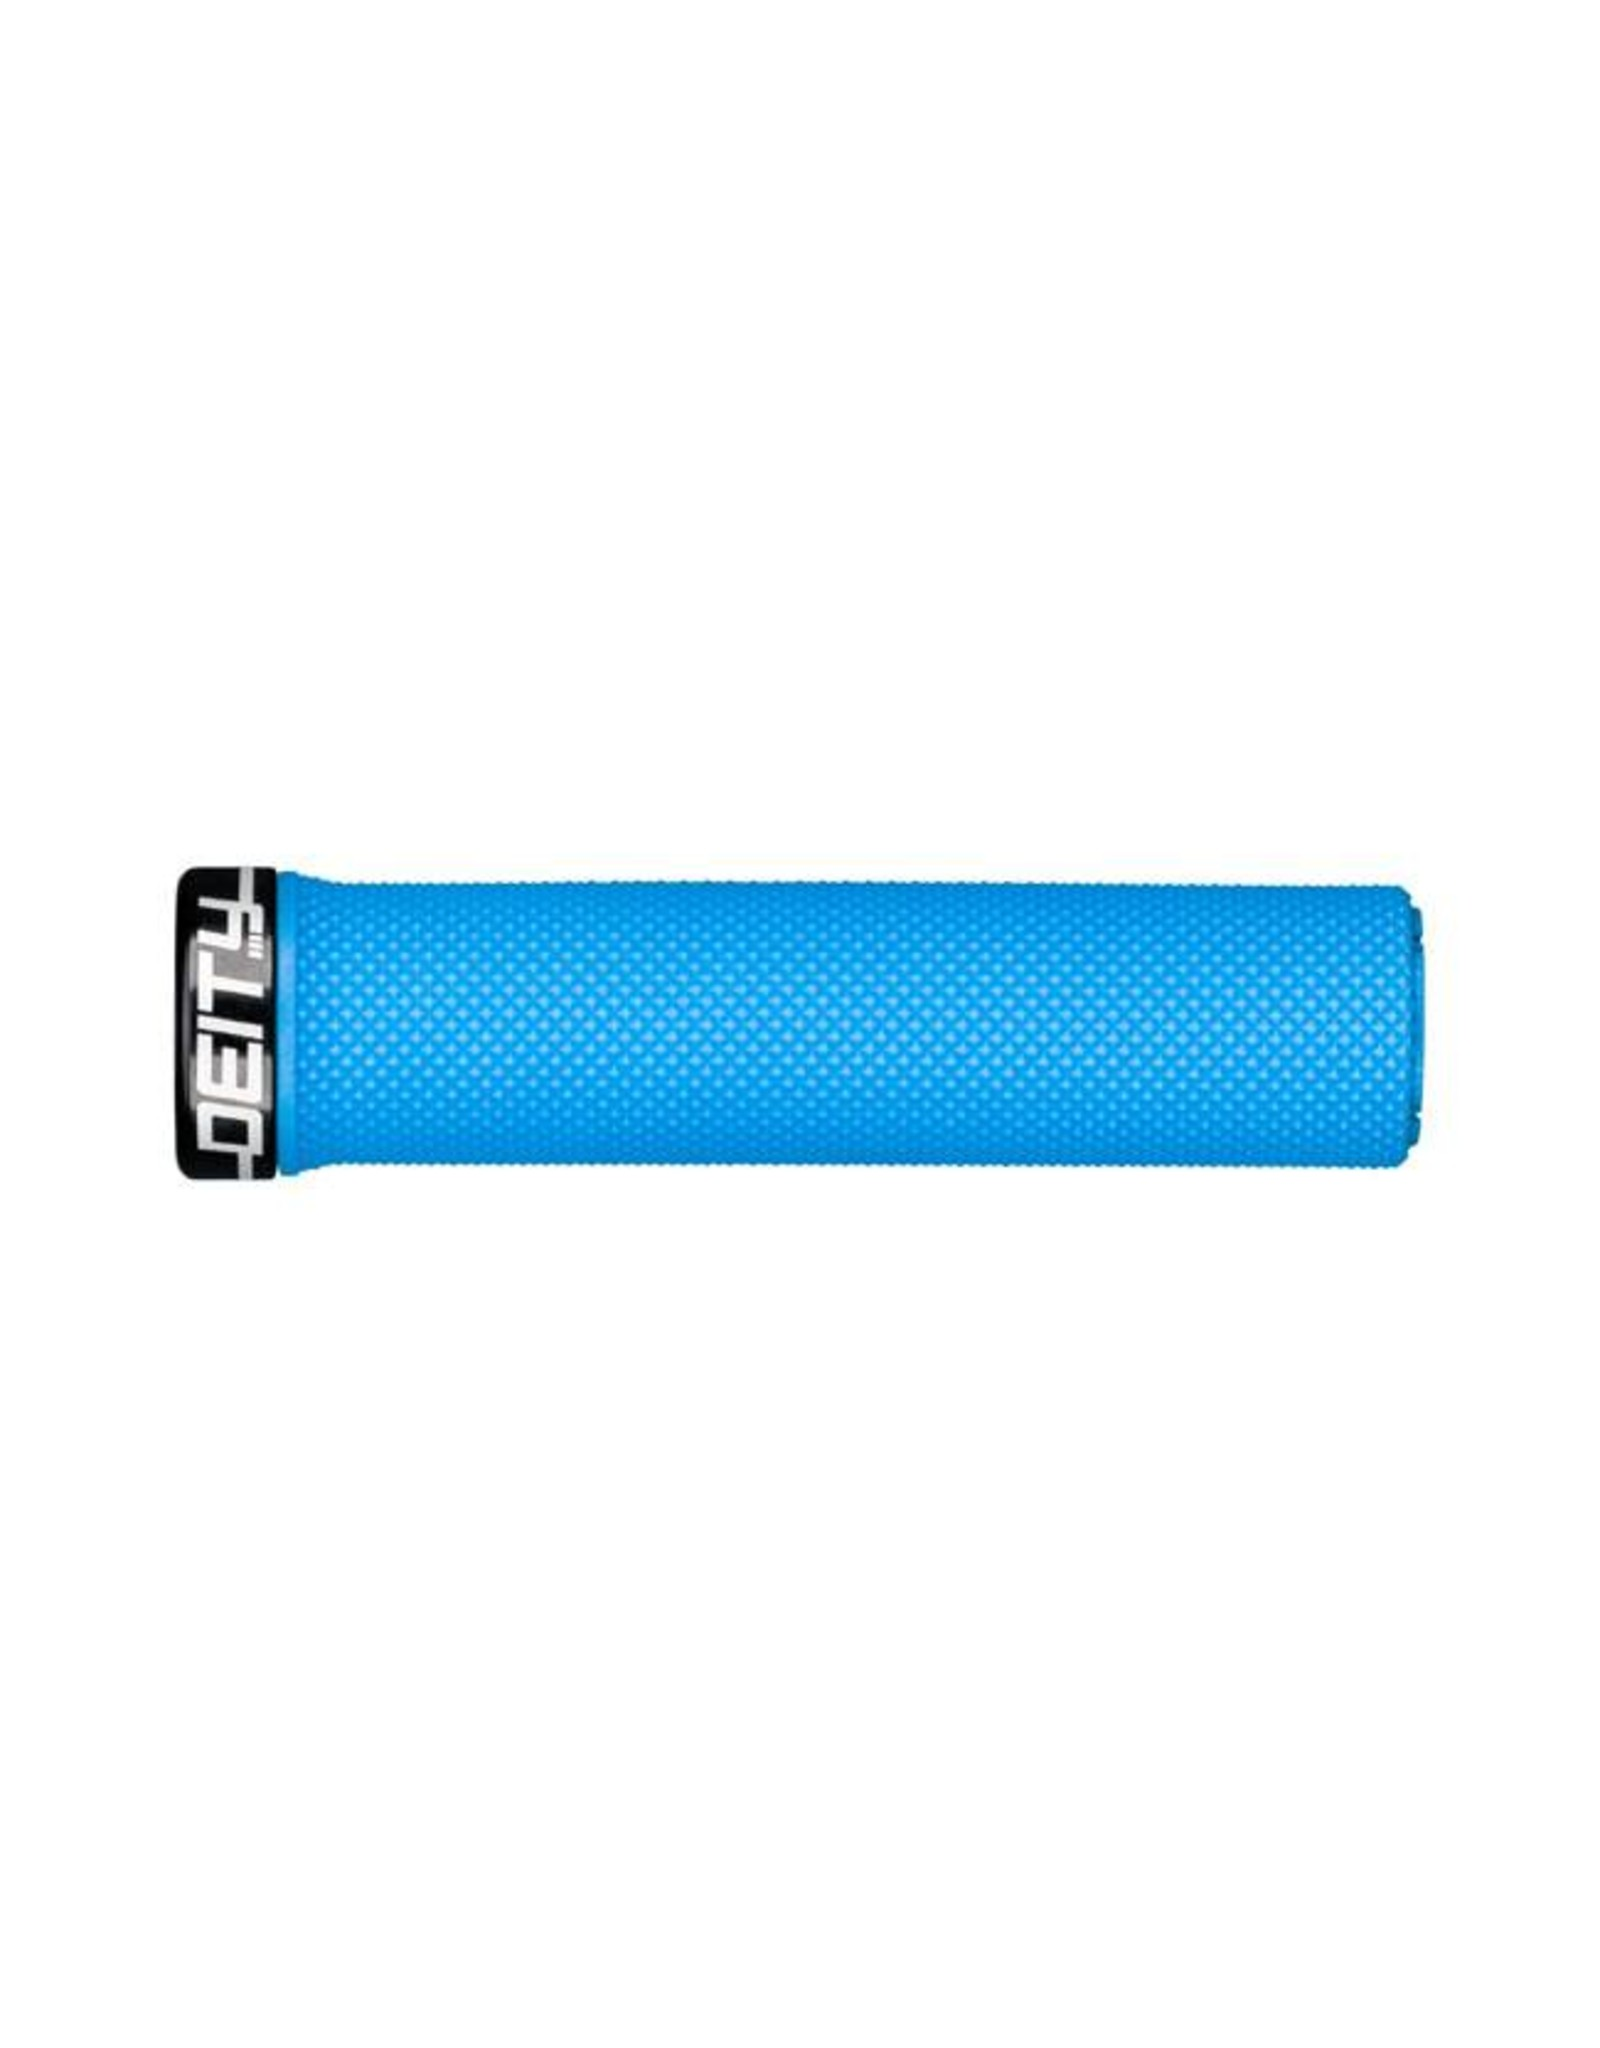 Deity Components Deity Waypoint Lock-on Grips: Blue with Black Clamp